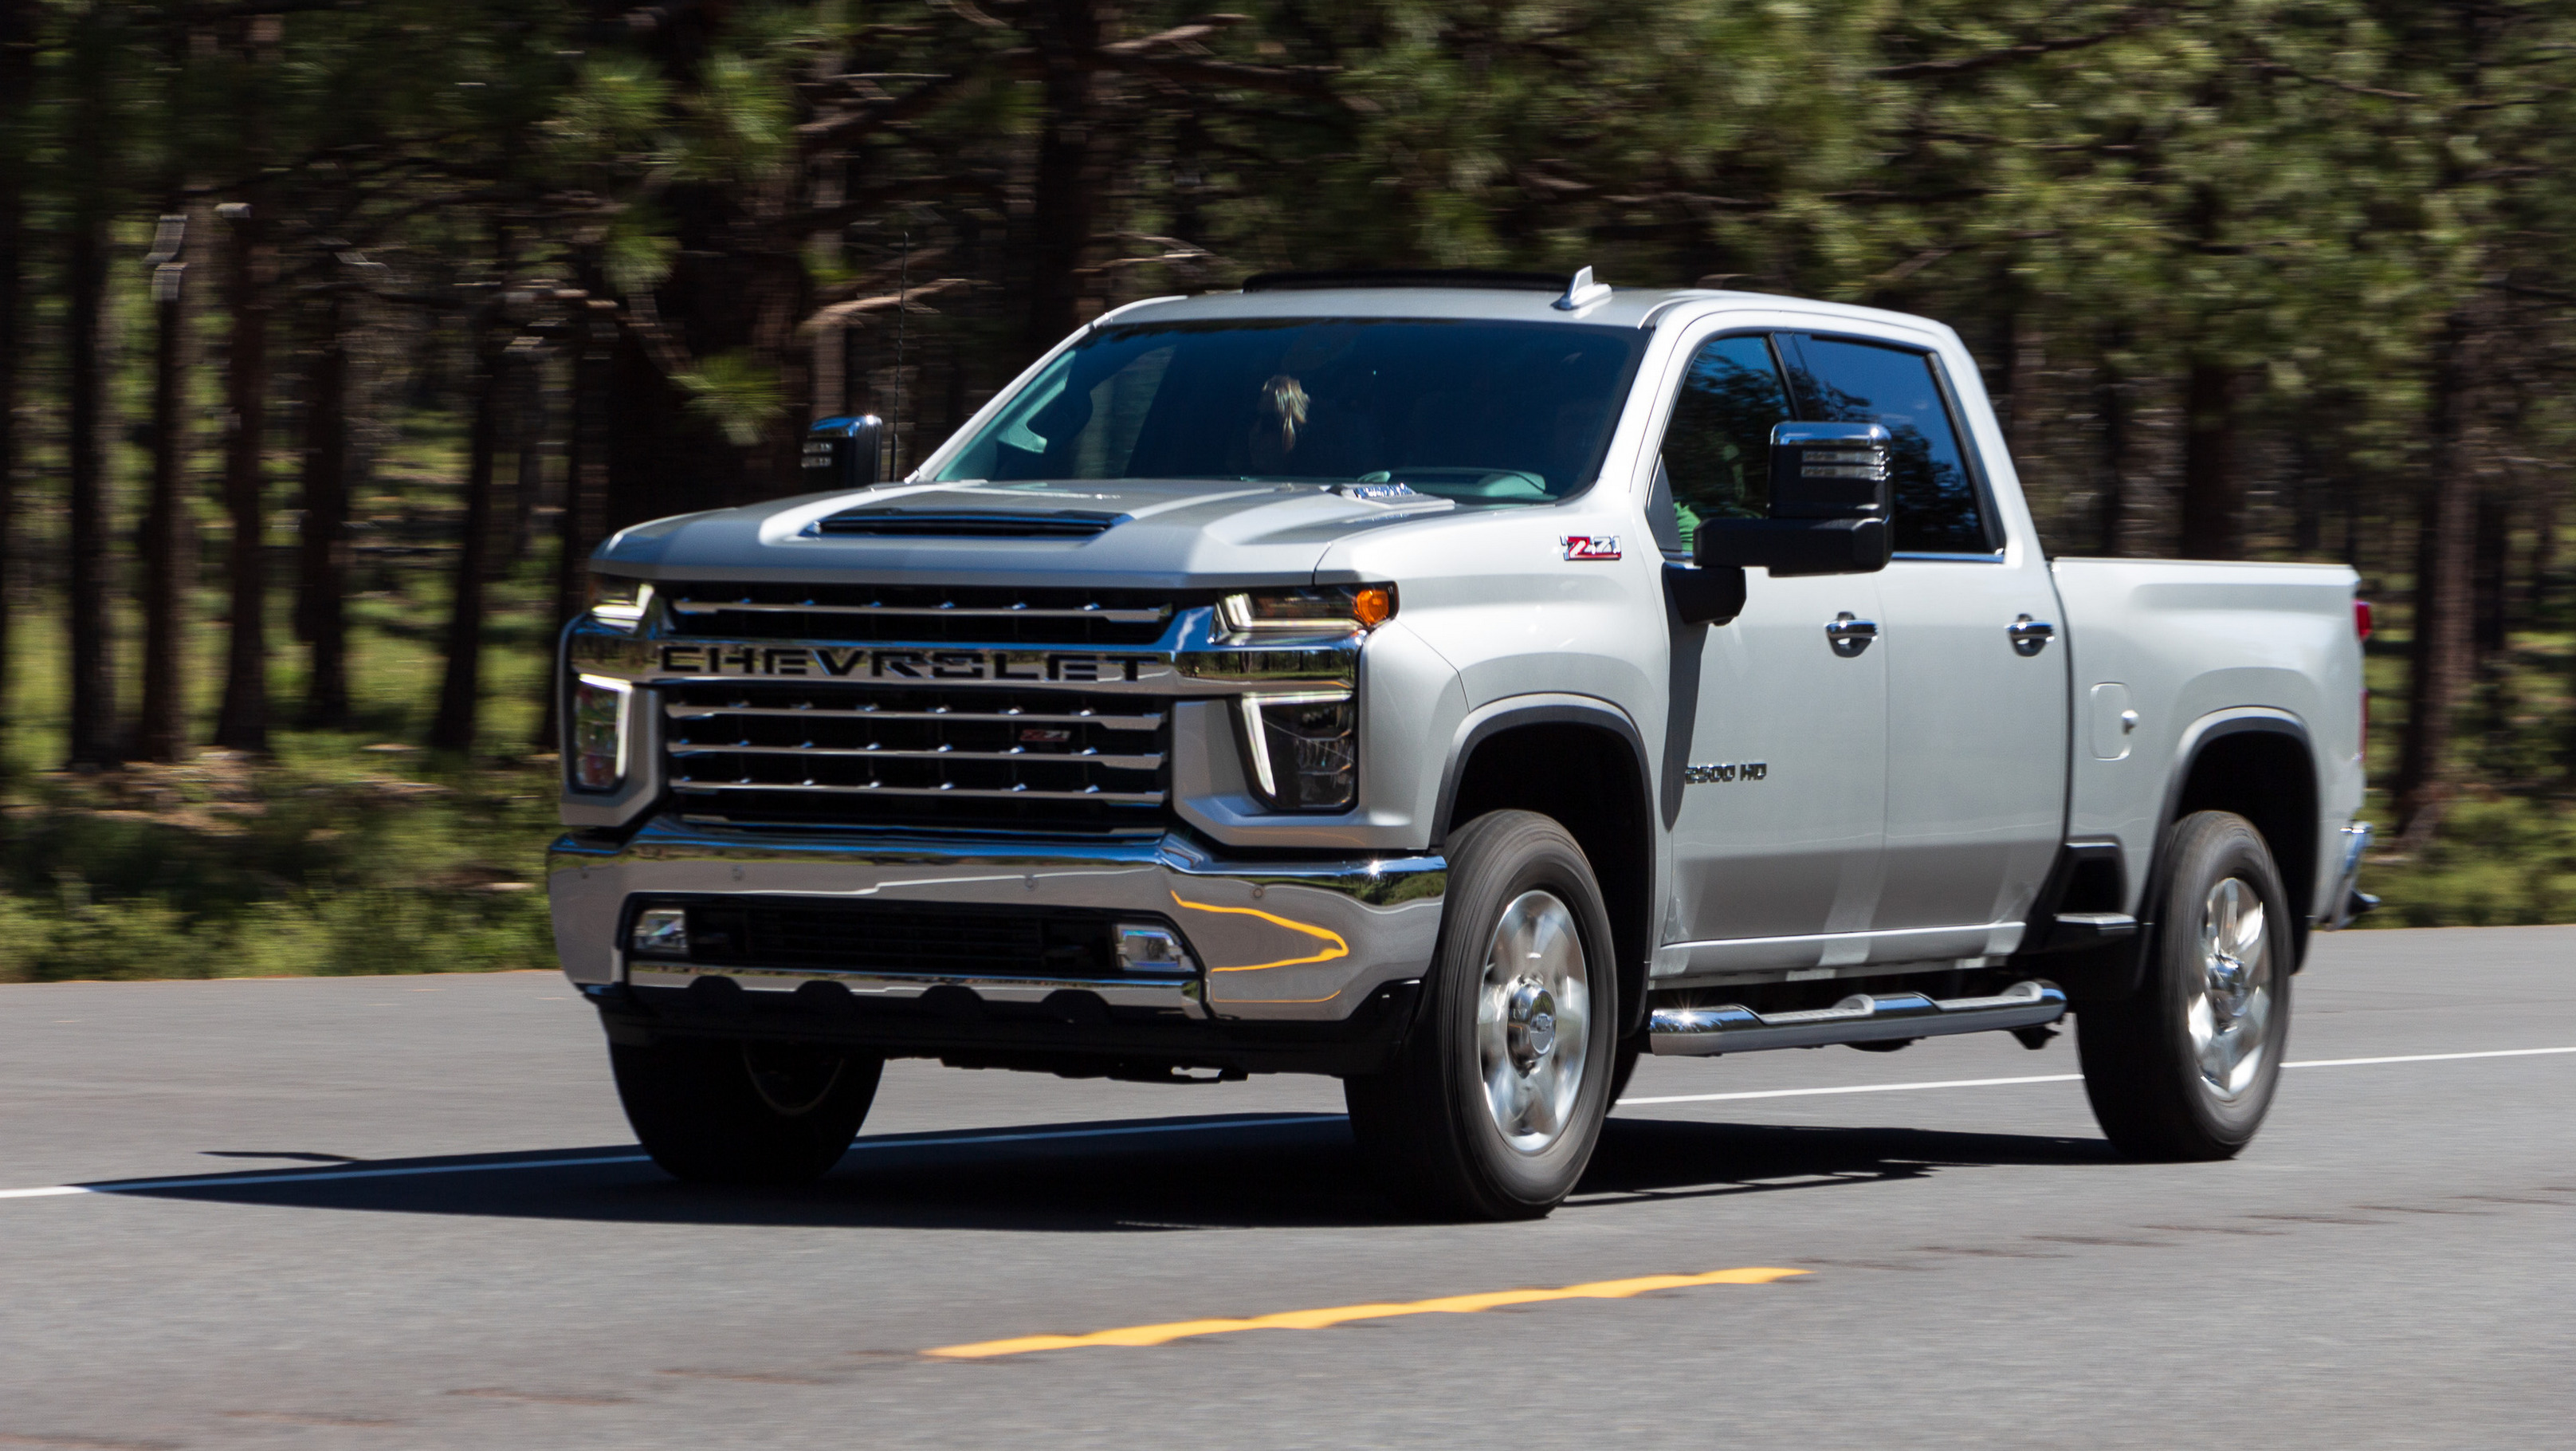 2020 Chevrolet Silverado HD Review